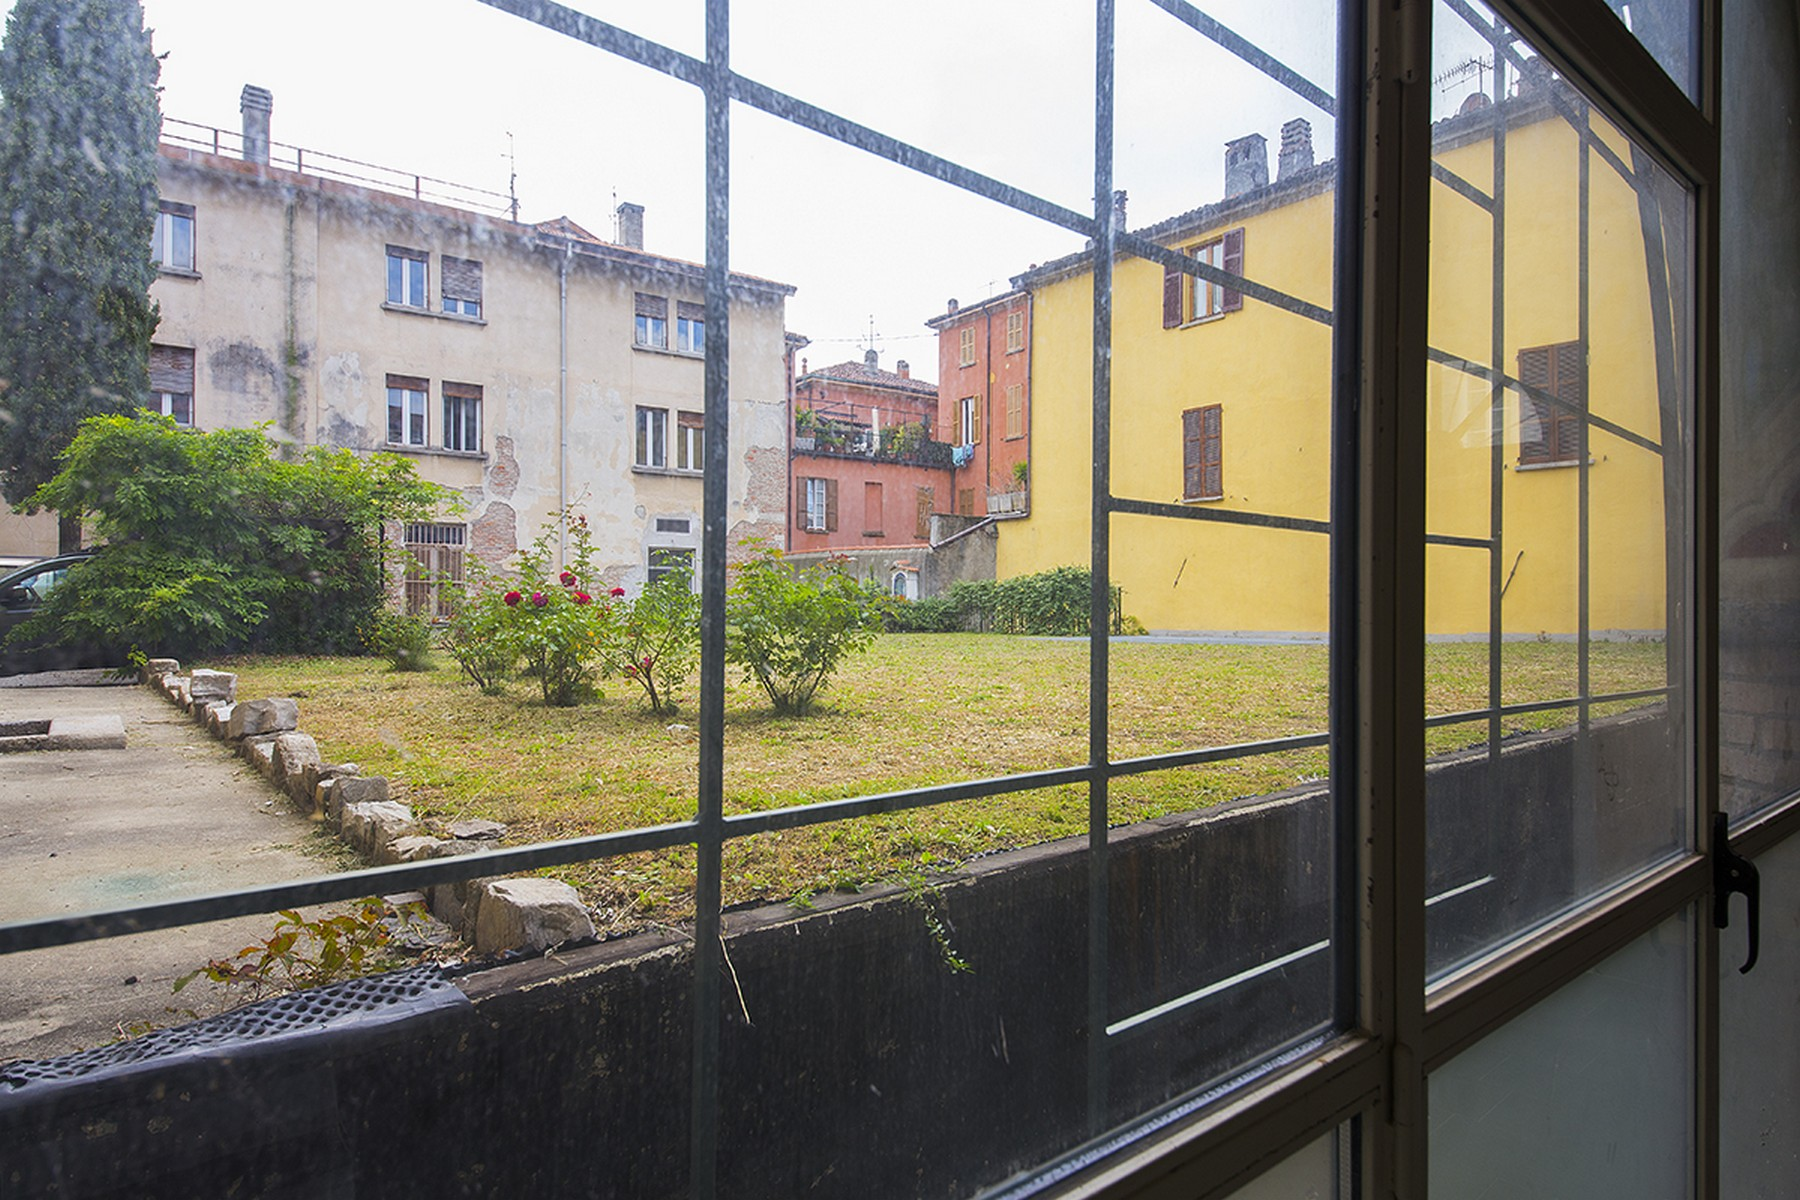 Additional photo for property listing at Magnificent semi-detached house in the historic center of Como Via Cinque Giornate Como, Como 22100 Italy